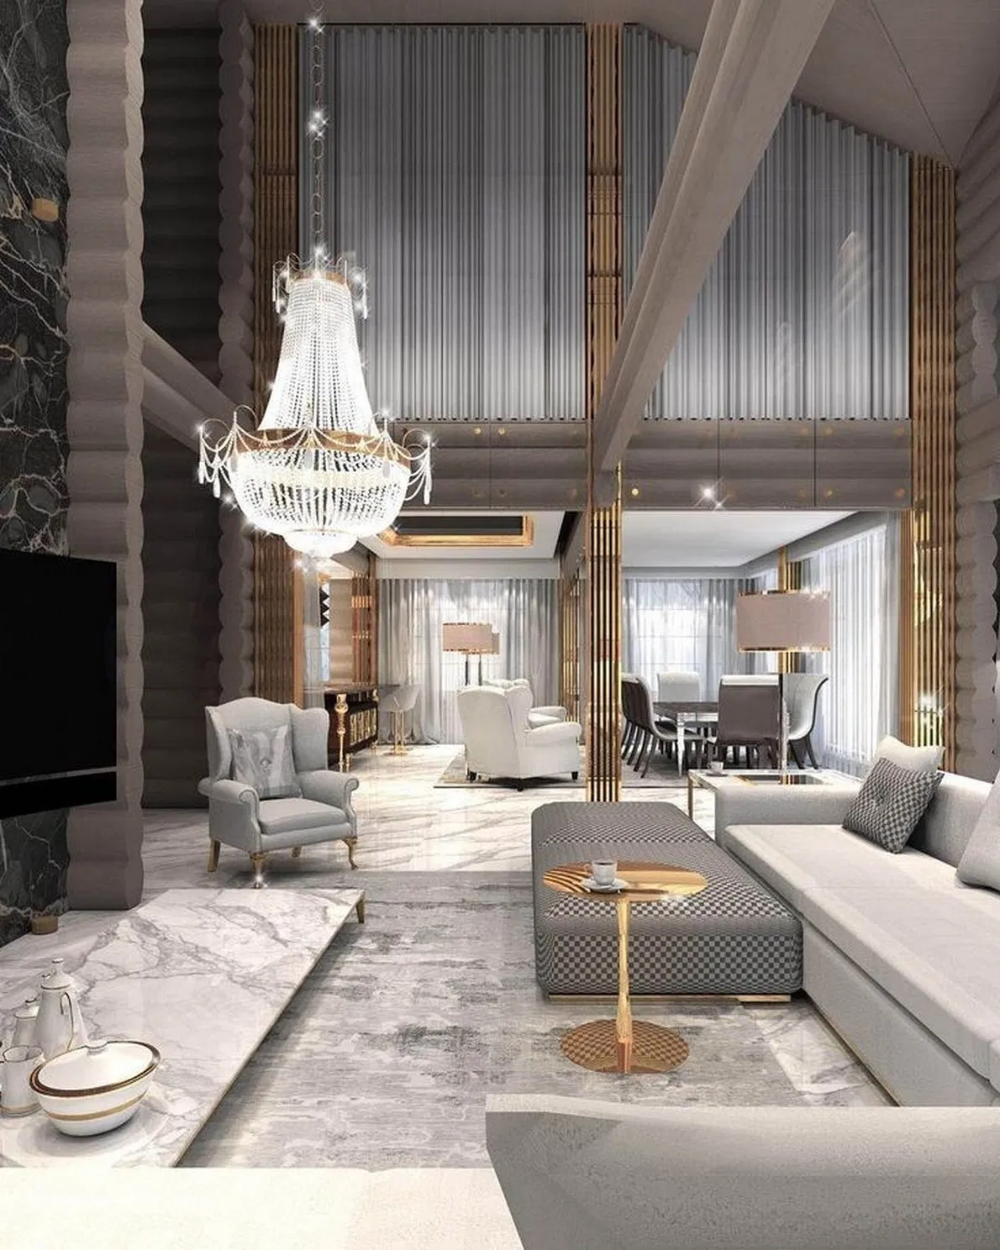 50 Best Living Room Decoration For Modern House 2020 1 In 2020